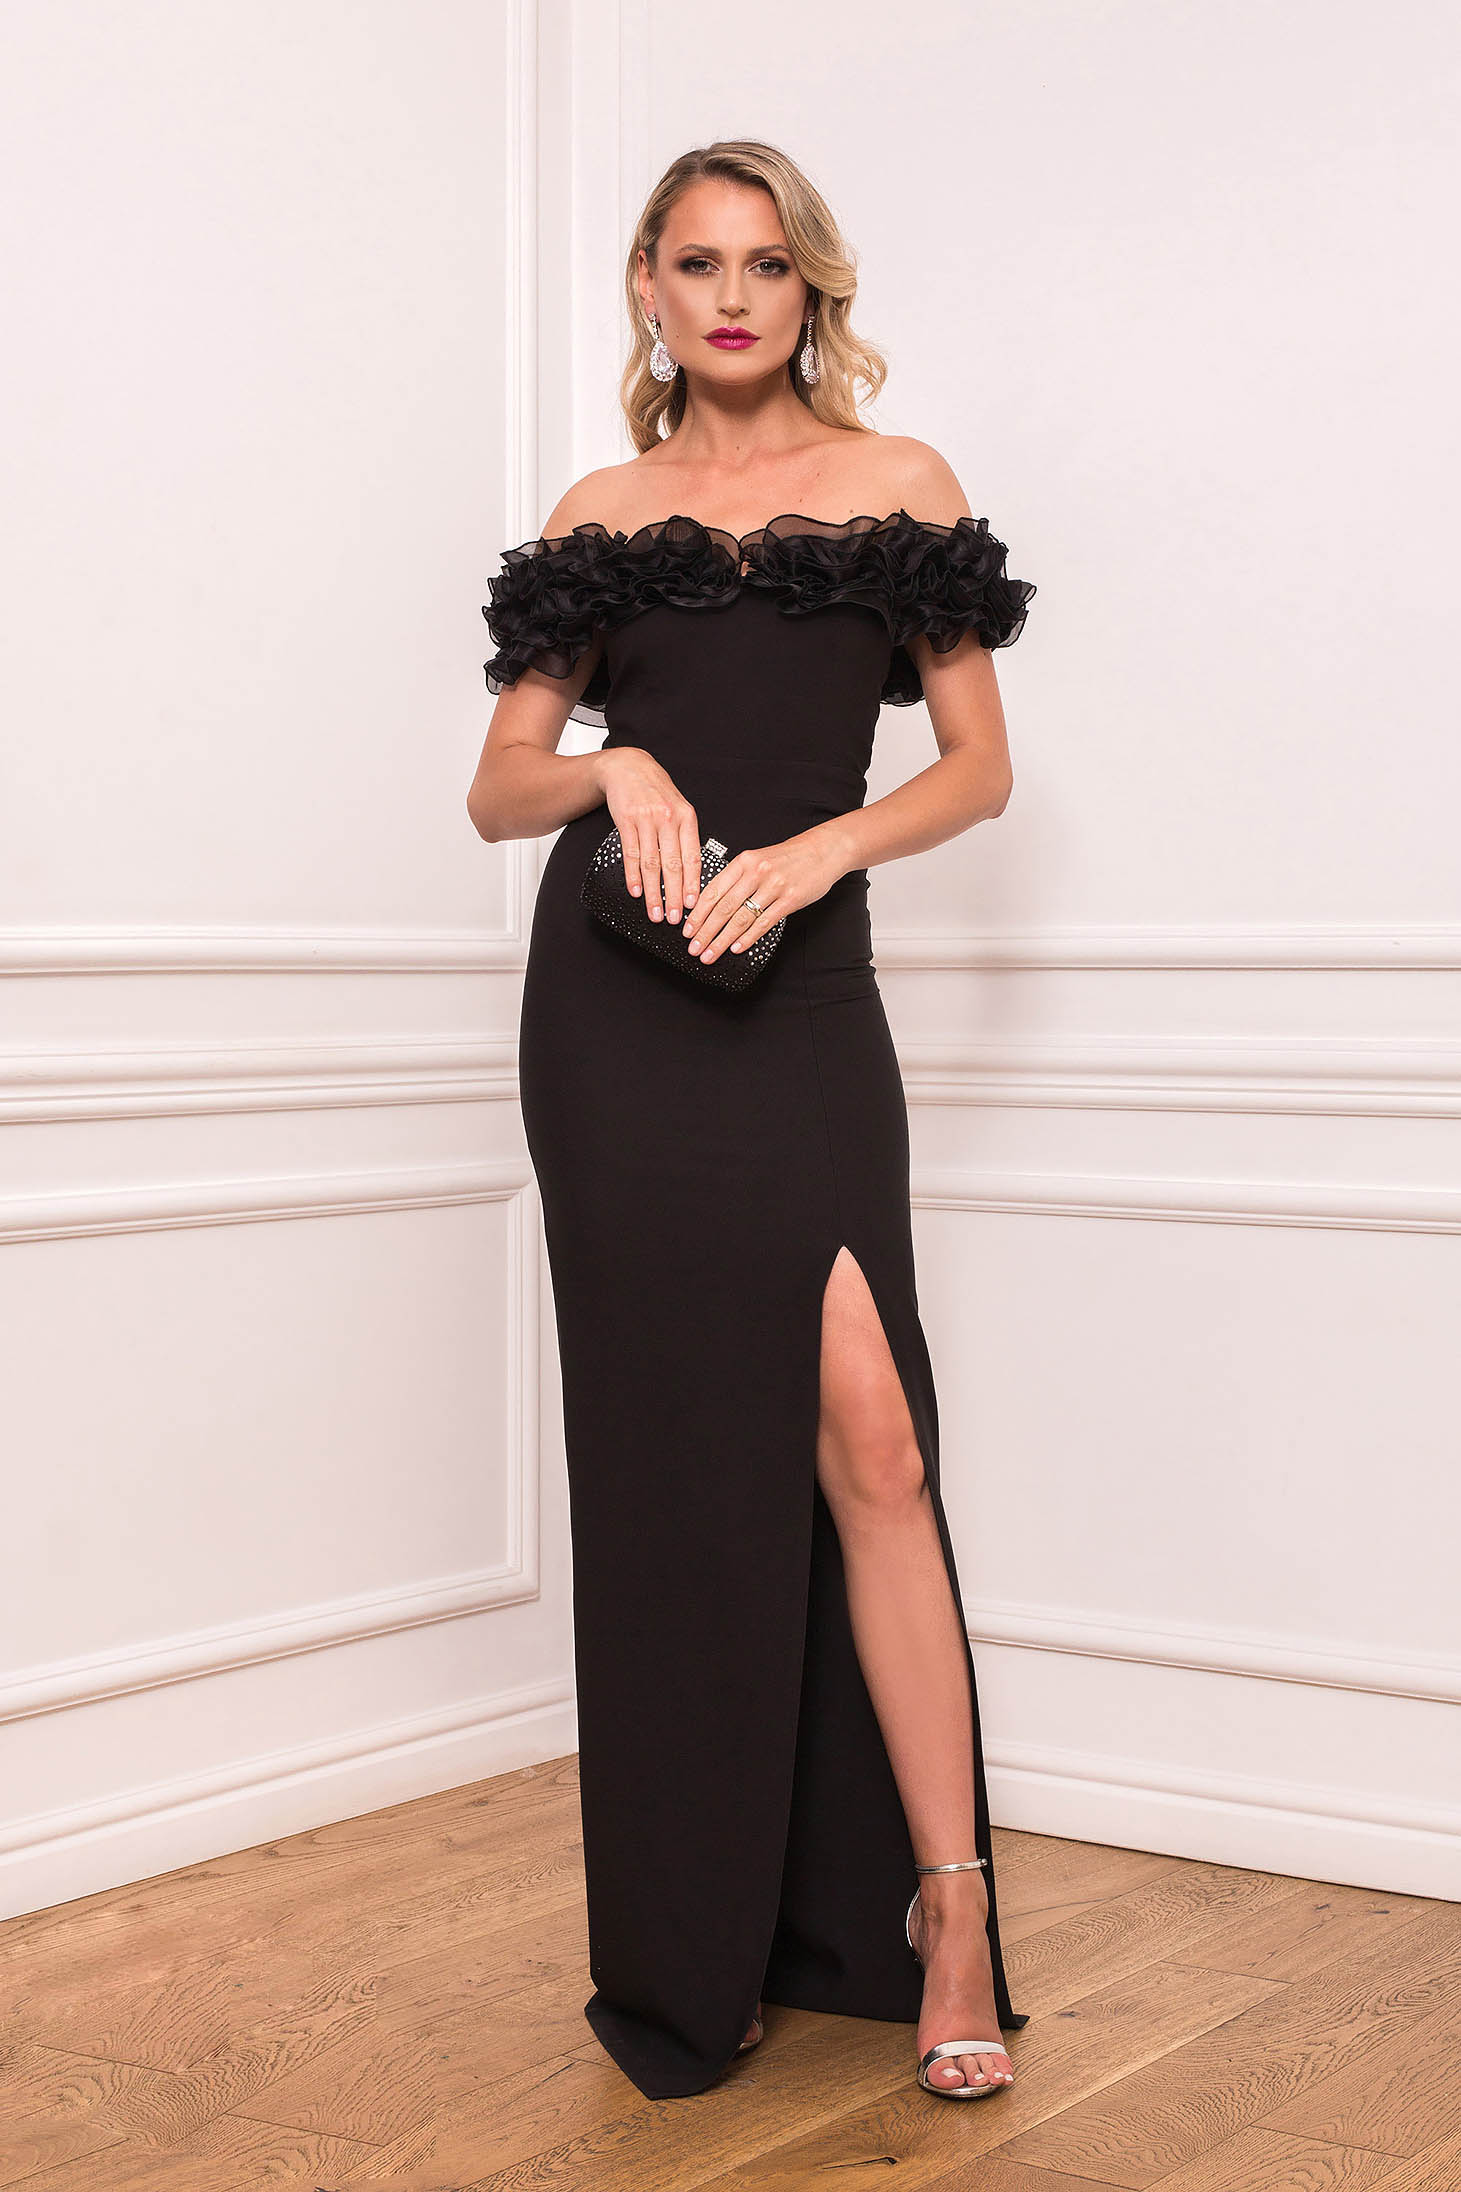 Black dress occasional long cloth thin fabric with ruffle details cut material without clothing naked shoulders